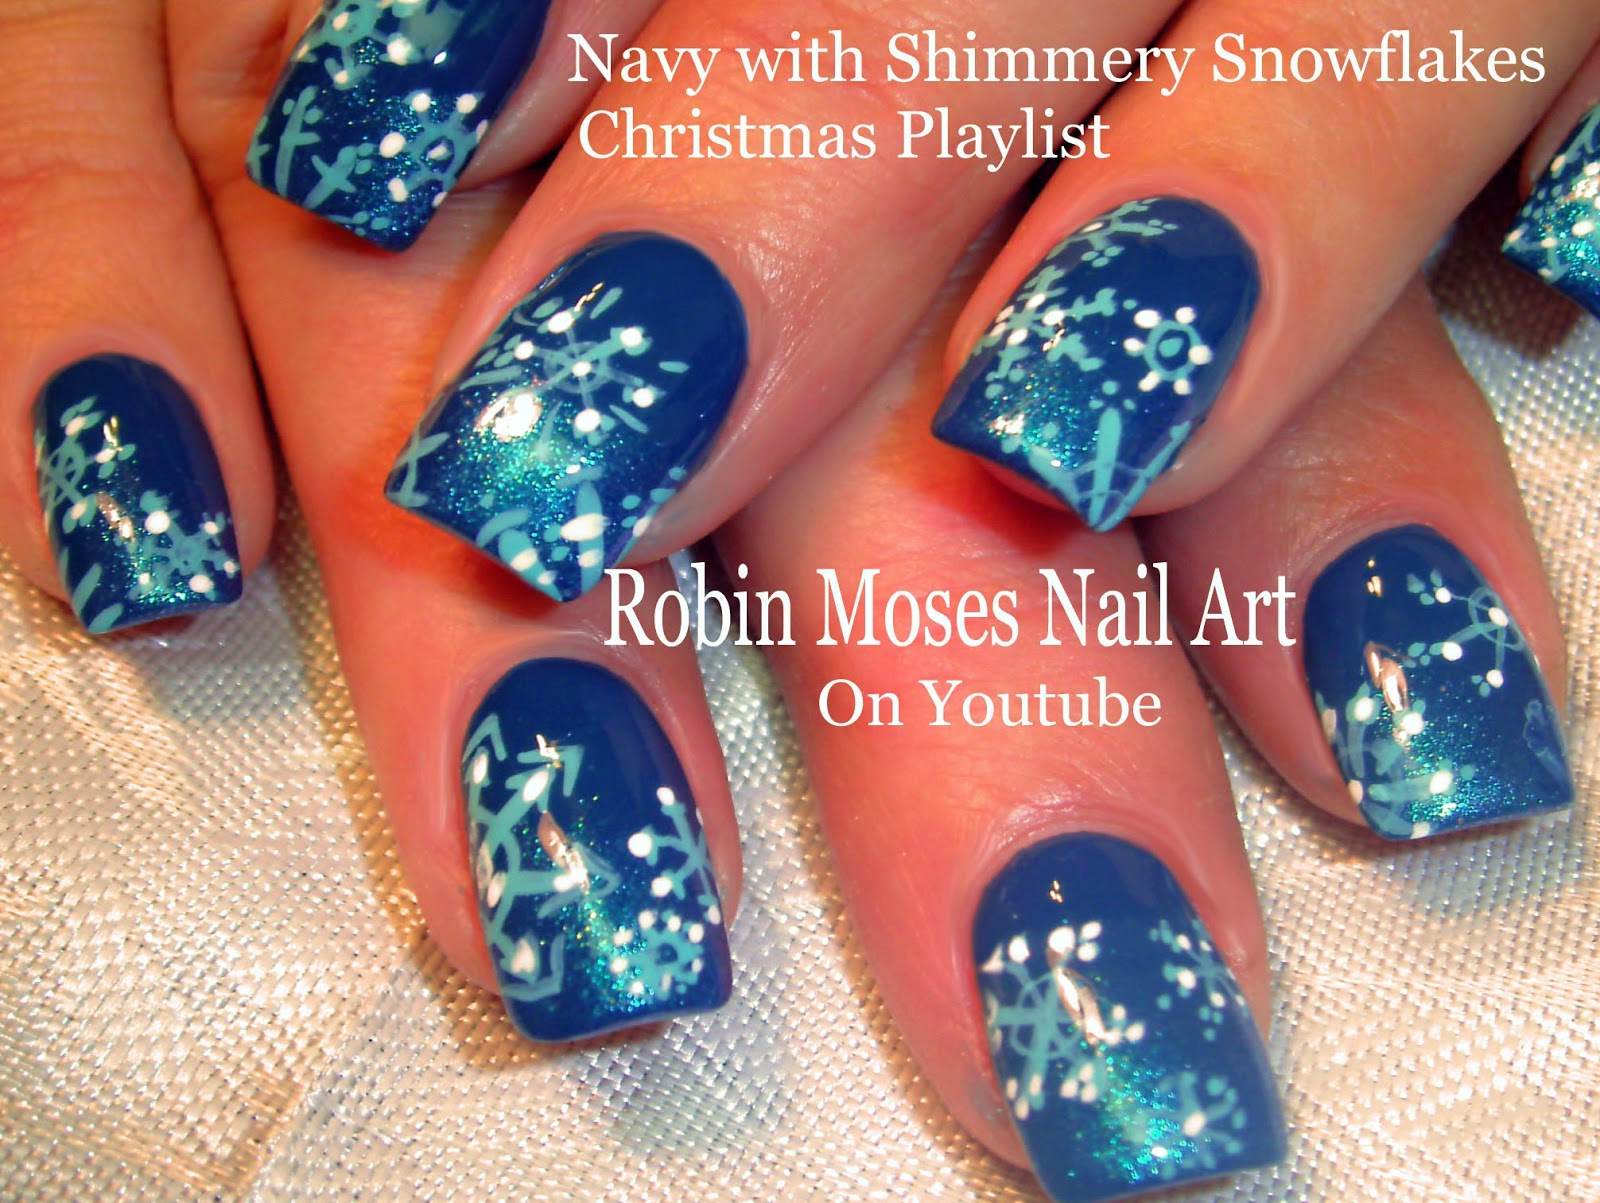 Snowflake Nail Design Cute Nails Snowflakes Different Pretty Art